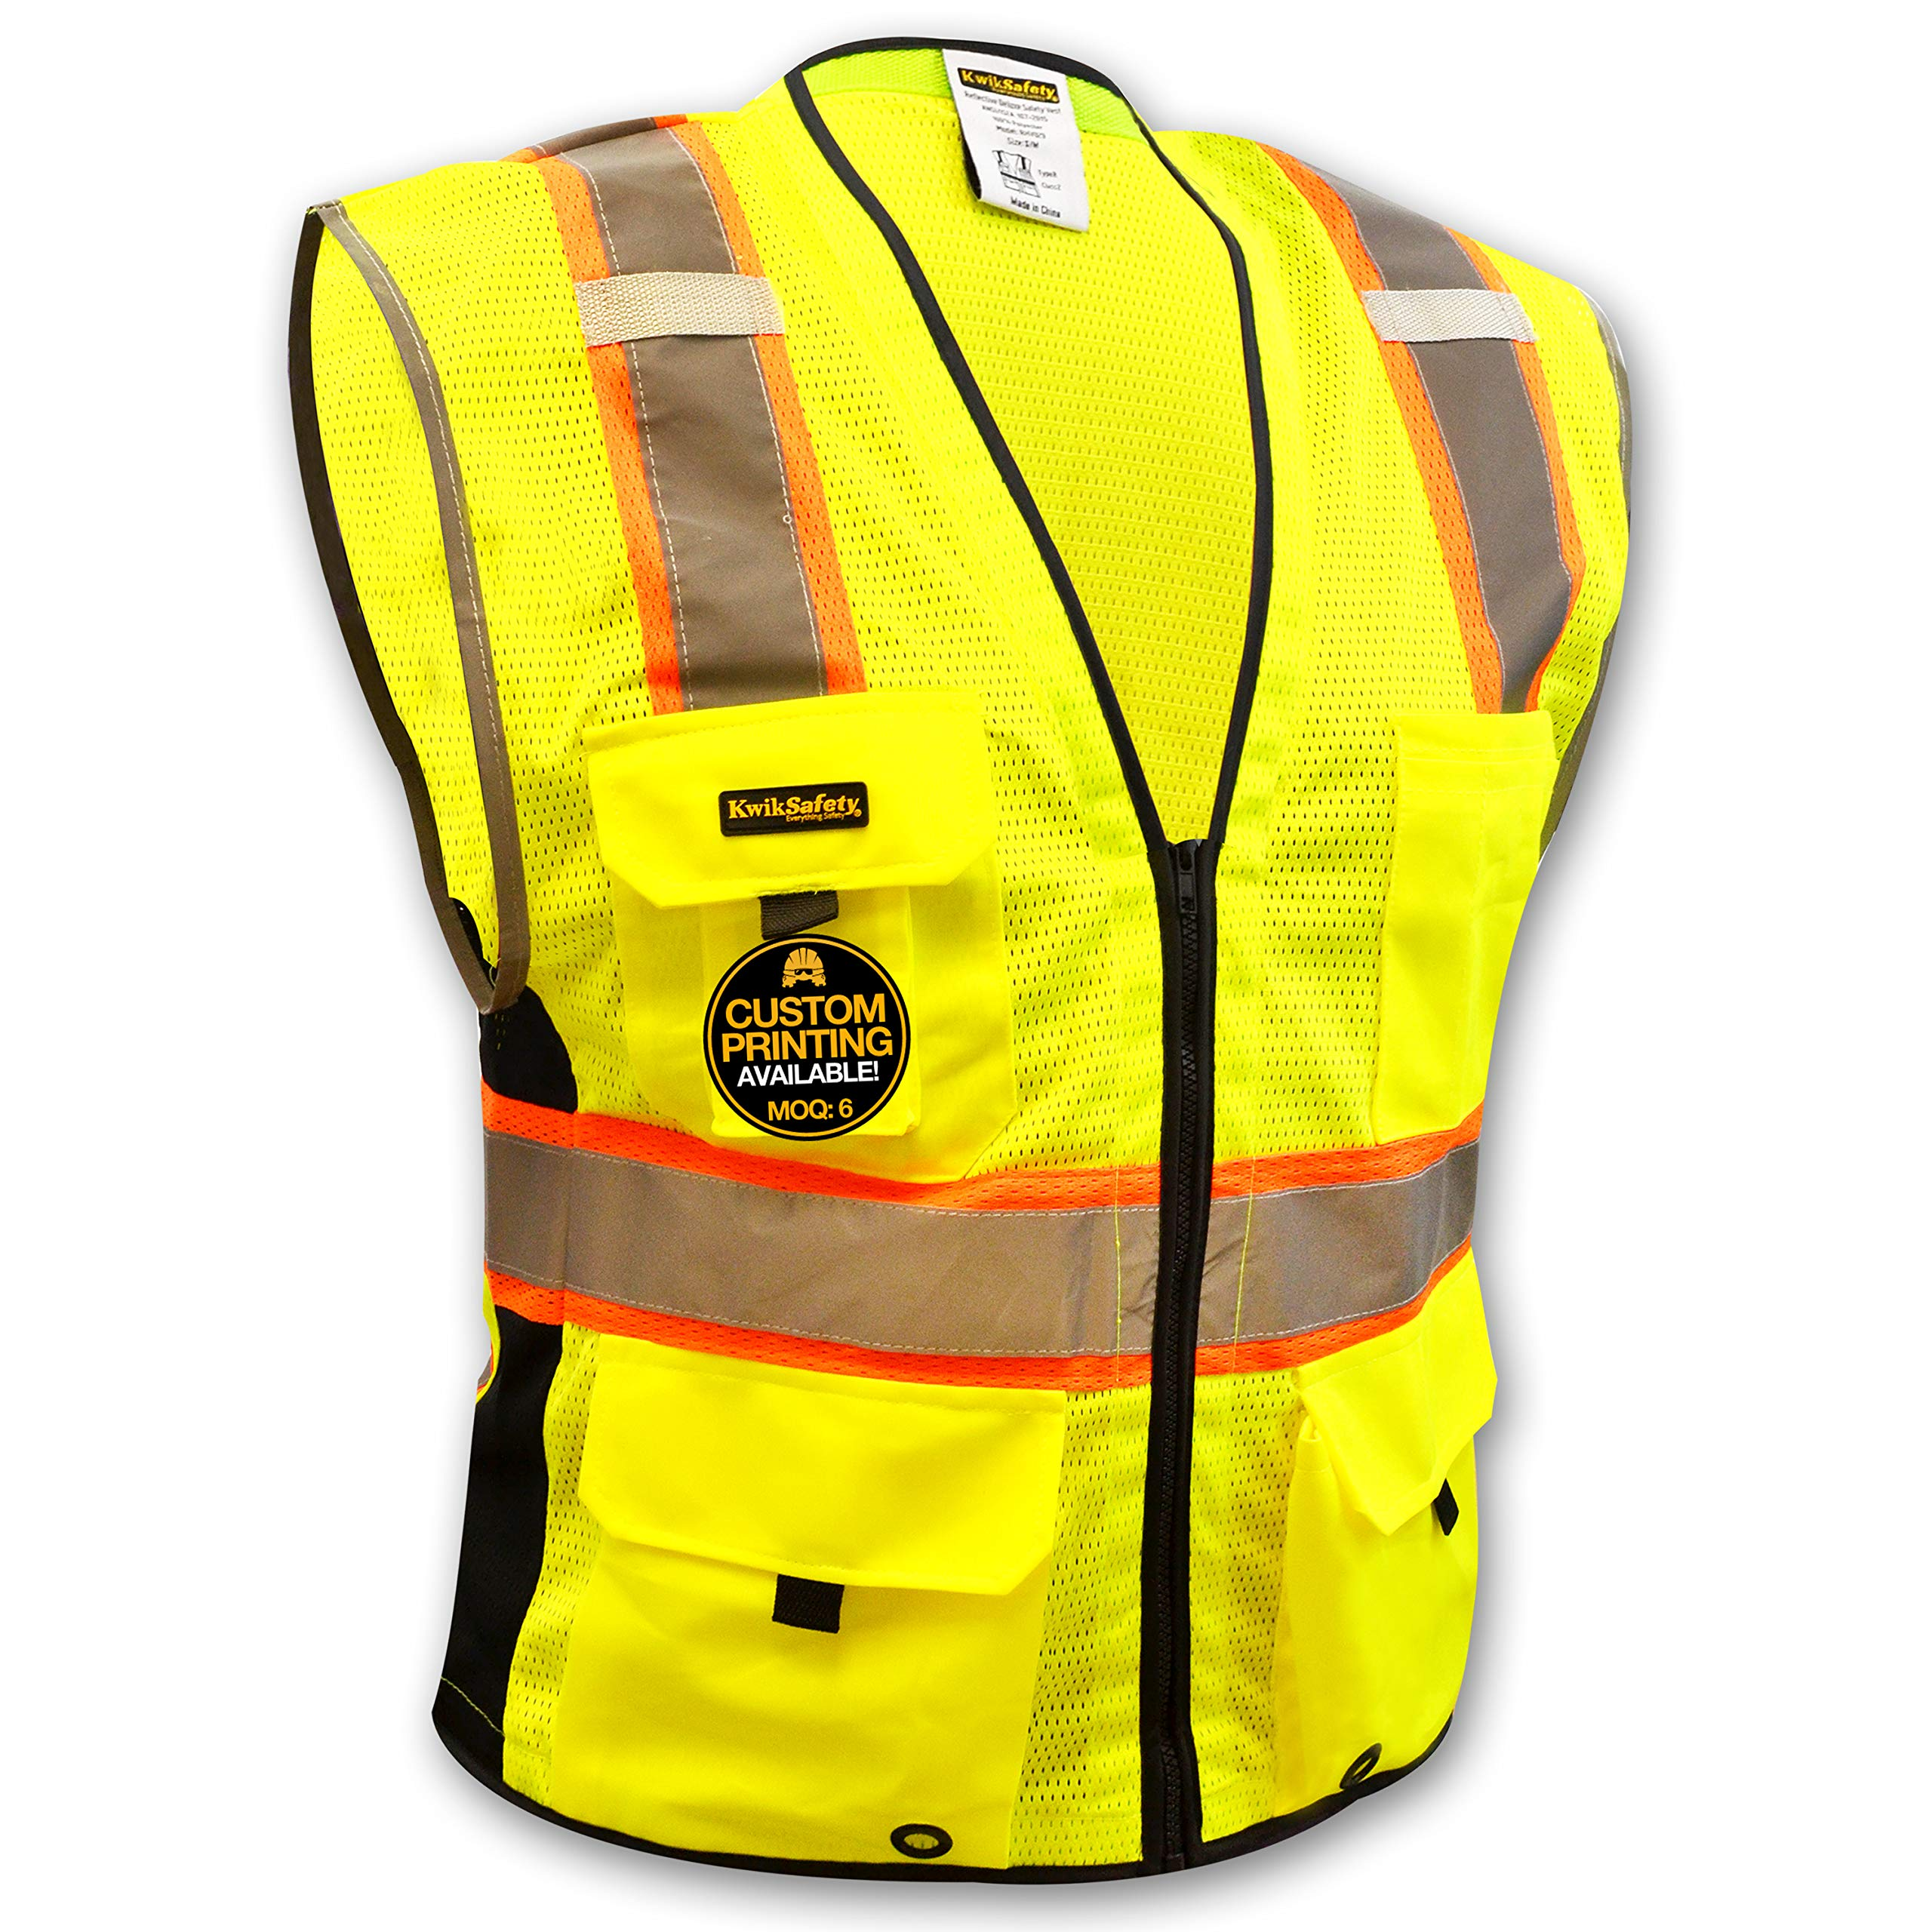 Security & Protection Workplace Safety Supplies Reflective Safety Vest With Pockets Working Clothes Jacket Mens Cargo Work Vest Multi Pockets Logo Printing A Wide Selection Of Colours And Designs